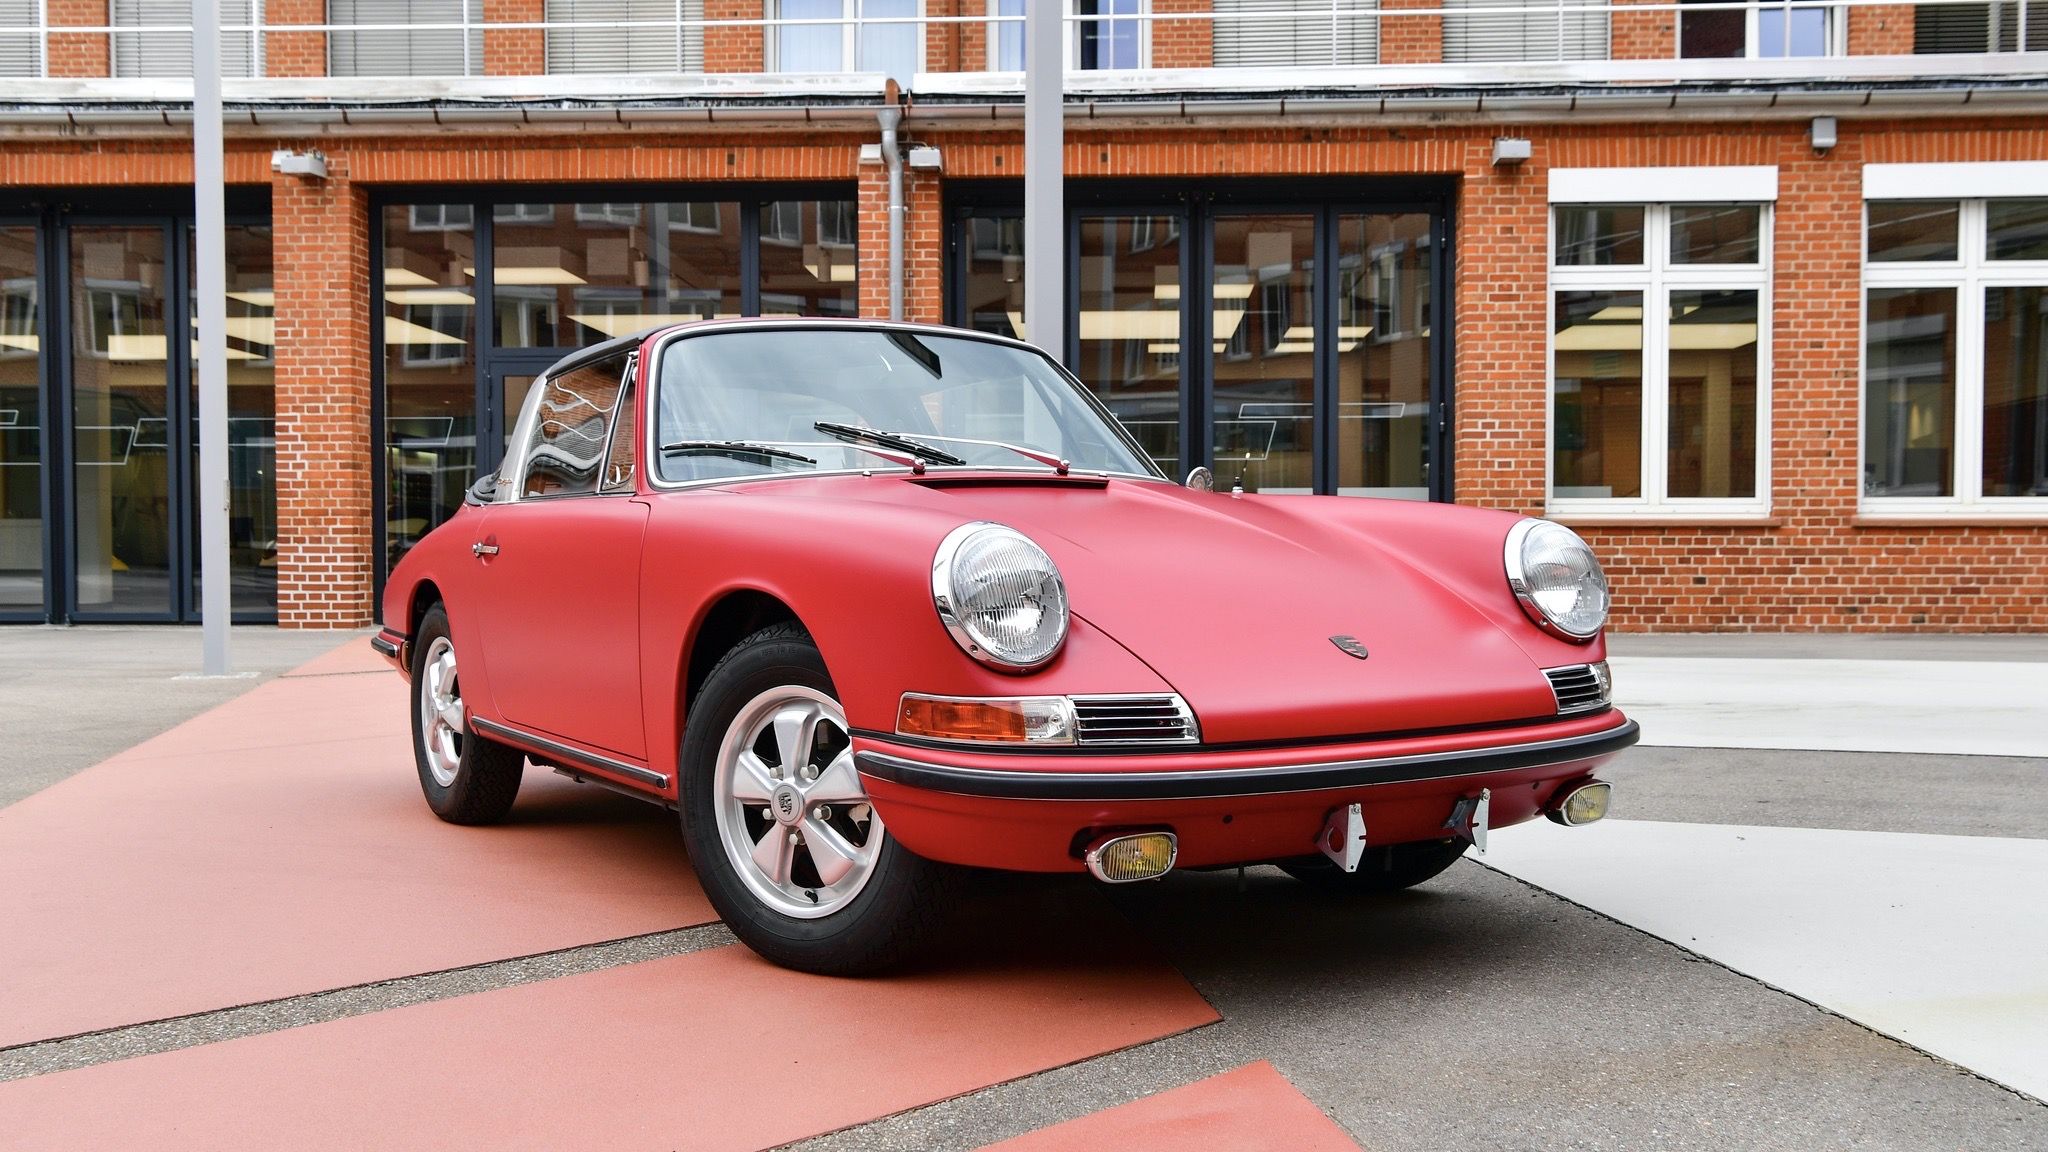 Resto_911_MY67_NeuGa_FinaleOutdoor_028_low